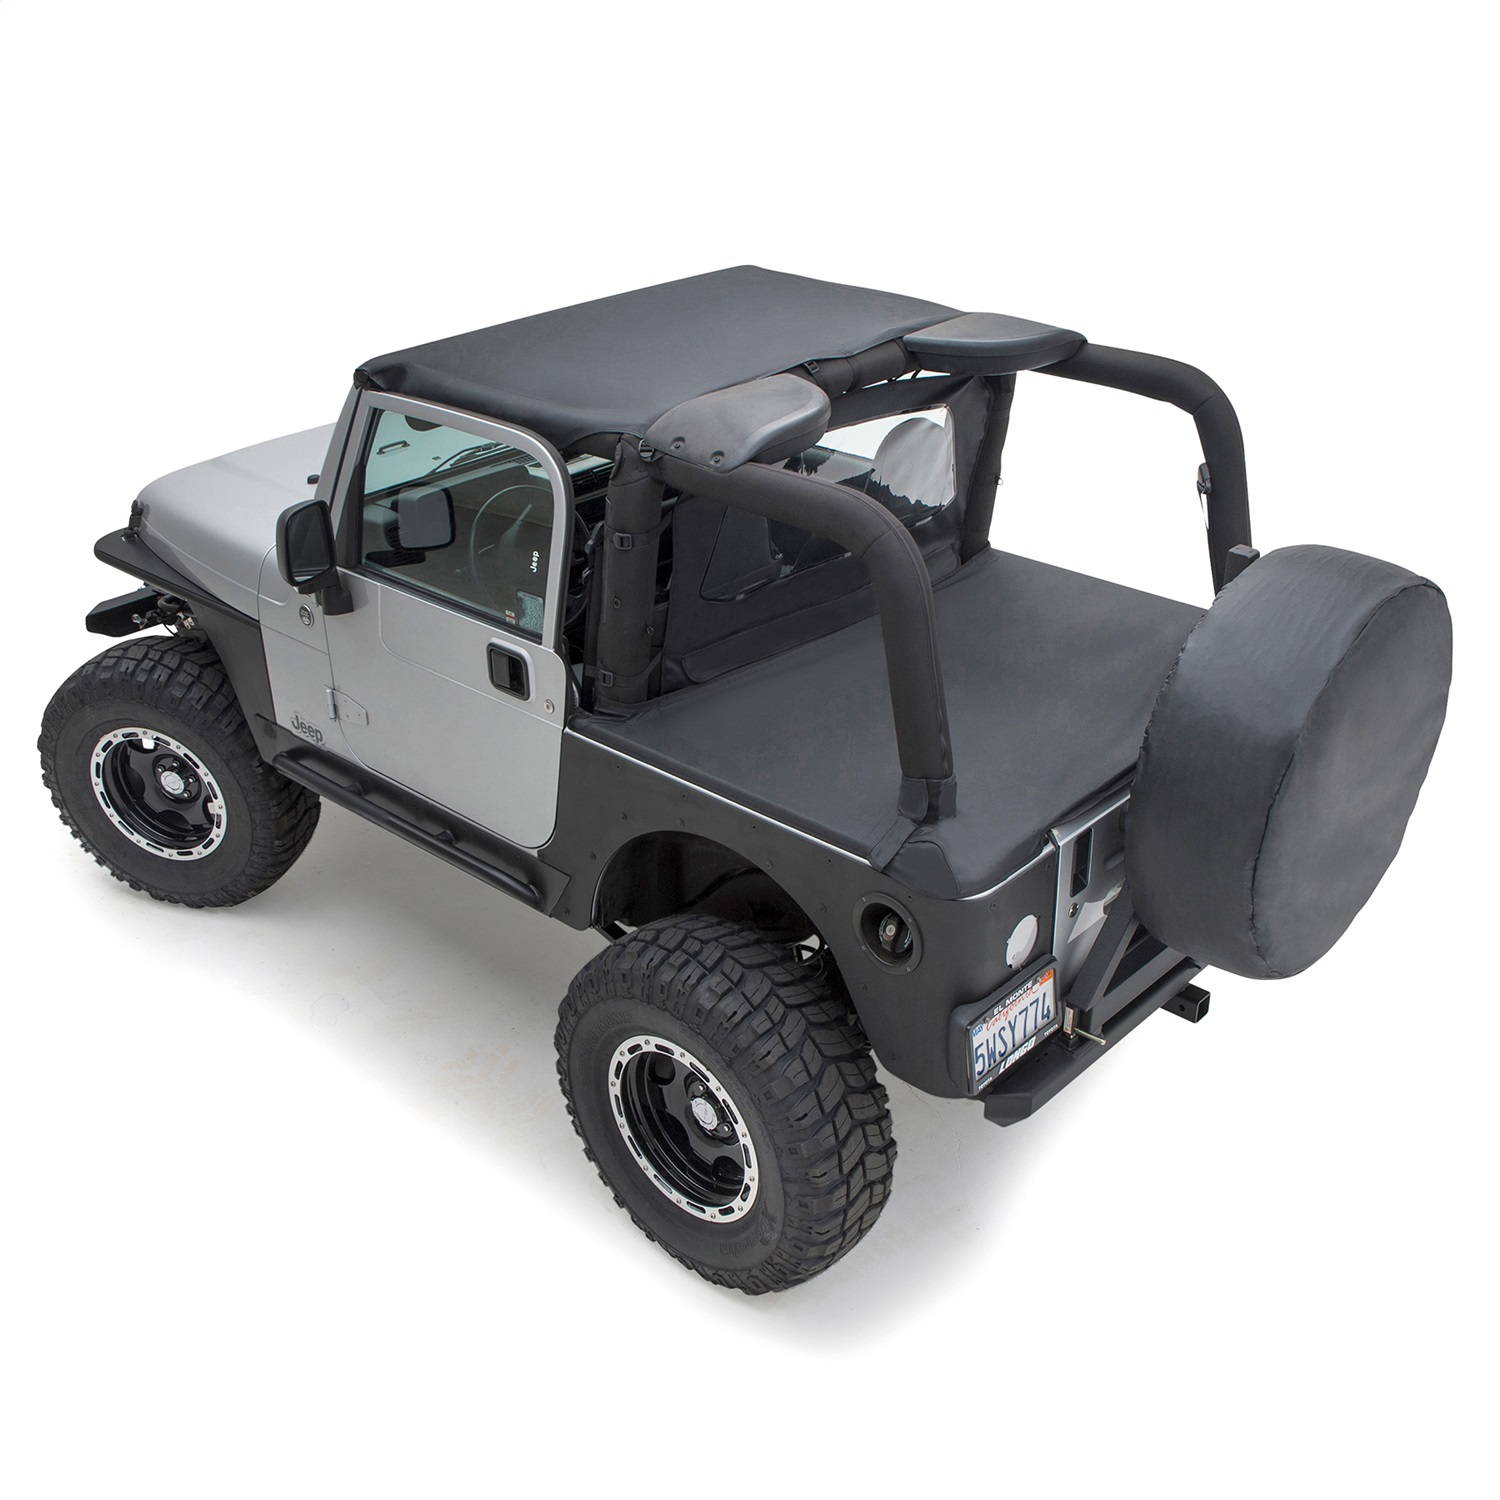 New Tonneau Cover Deck Cover 761035 Black Diamond 97 06 For Jeep Wrangler Tj